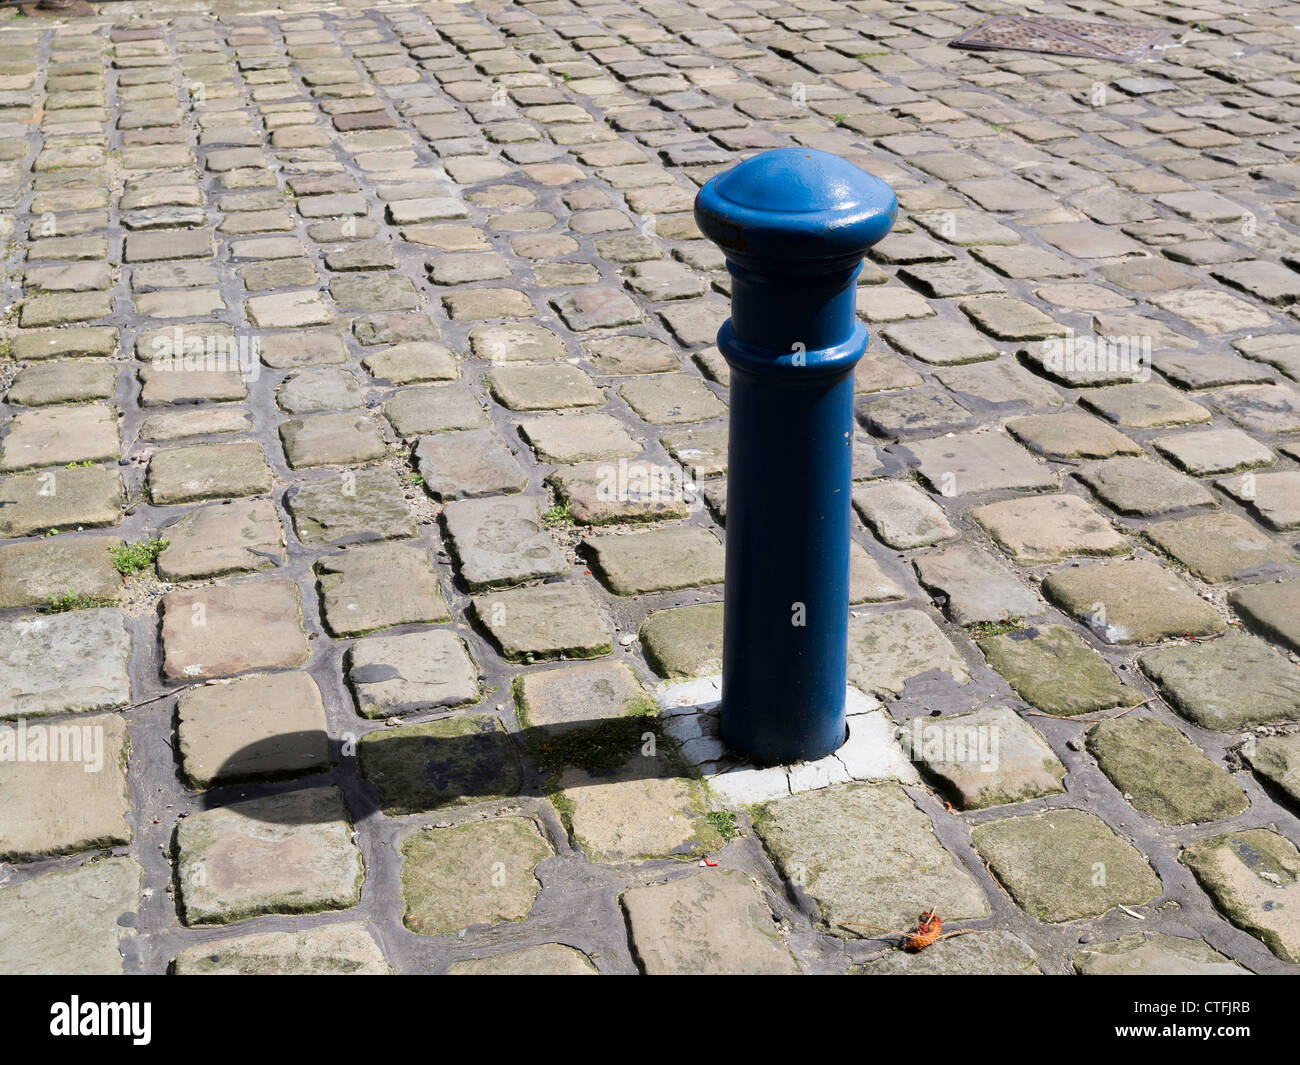 Vintage Sideboard Cornwall Cobbled Road Stock Photos & Cobbled Road Stock Images - Alamy